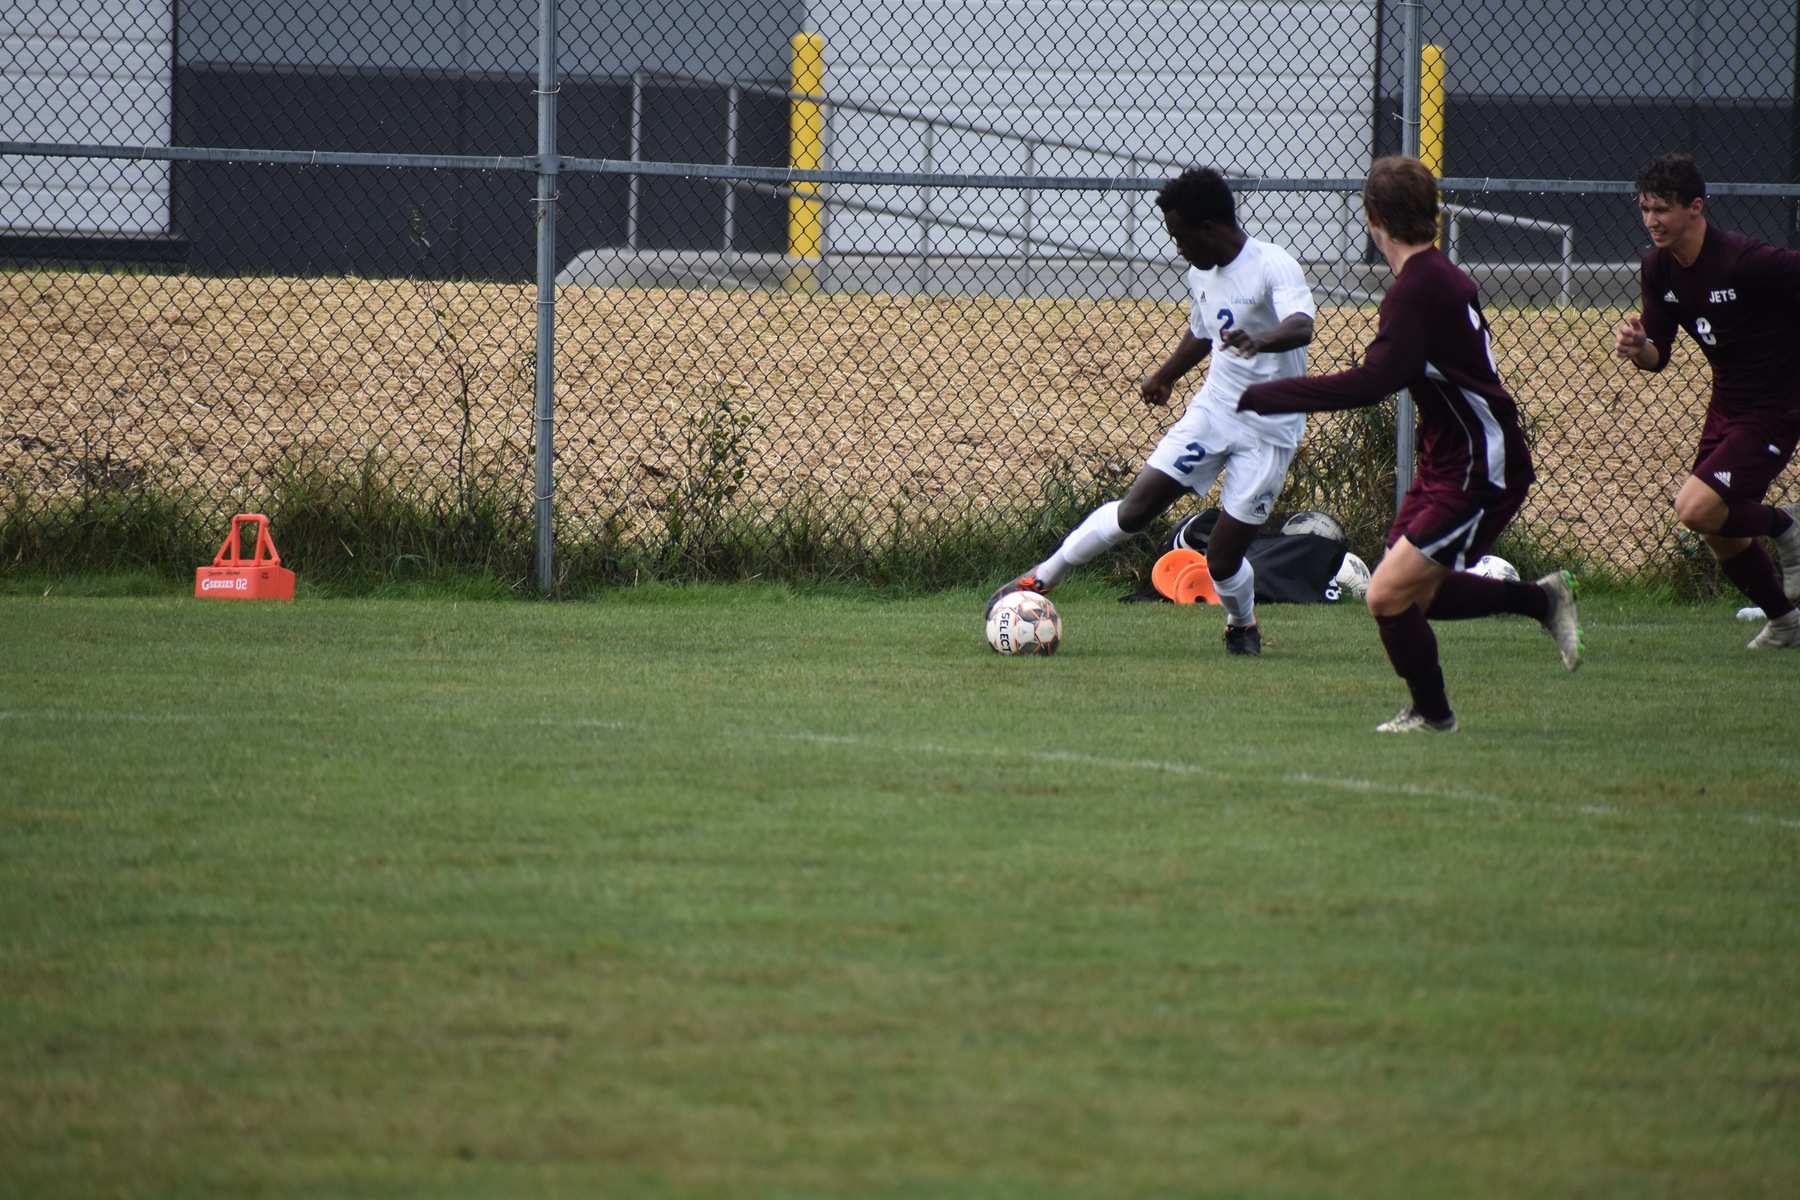 Lakers men's soccer rolls to victory over Red Hawks